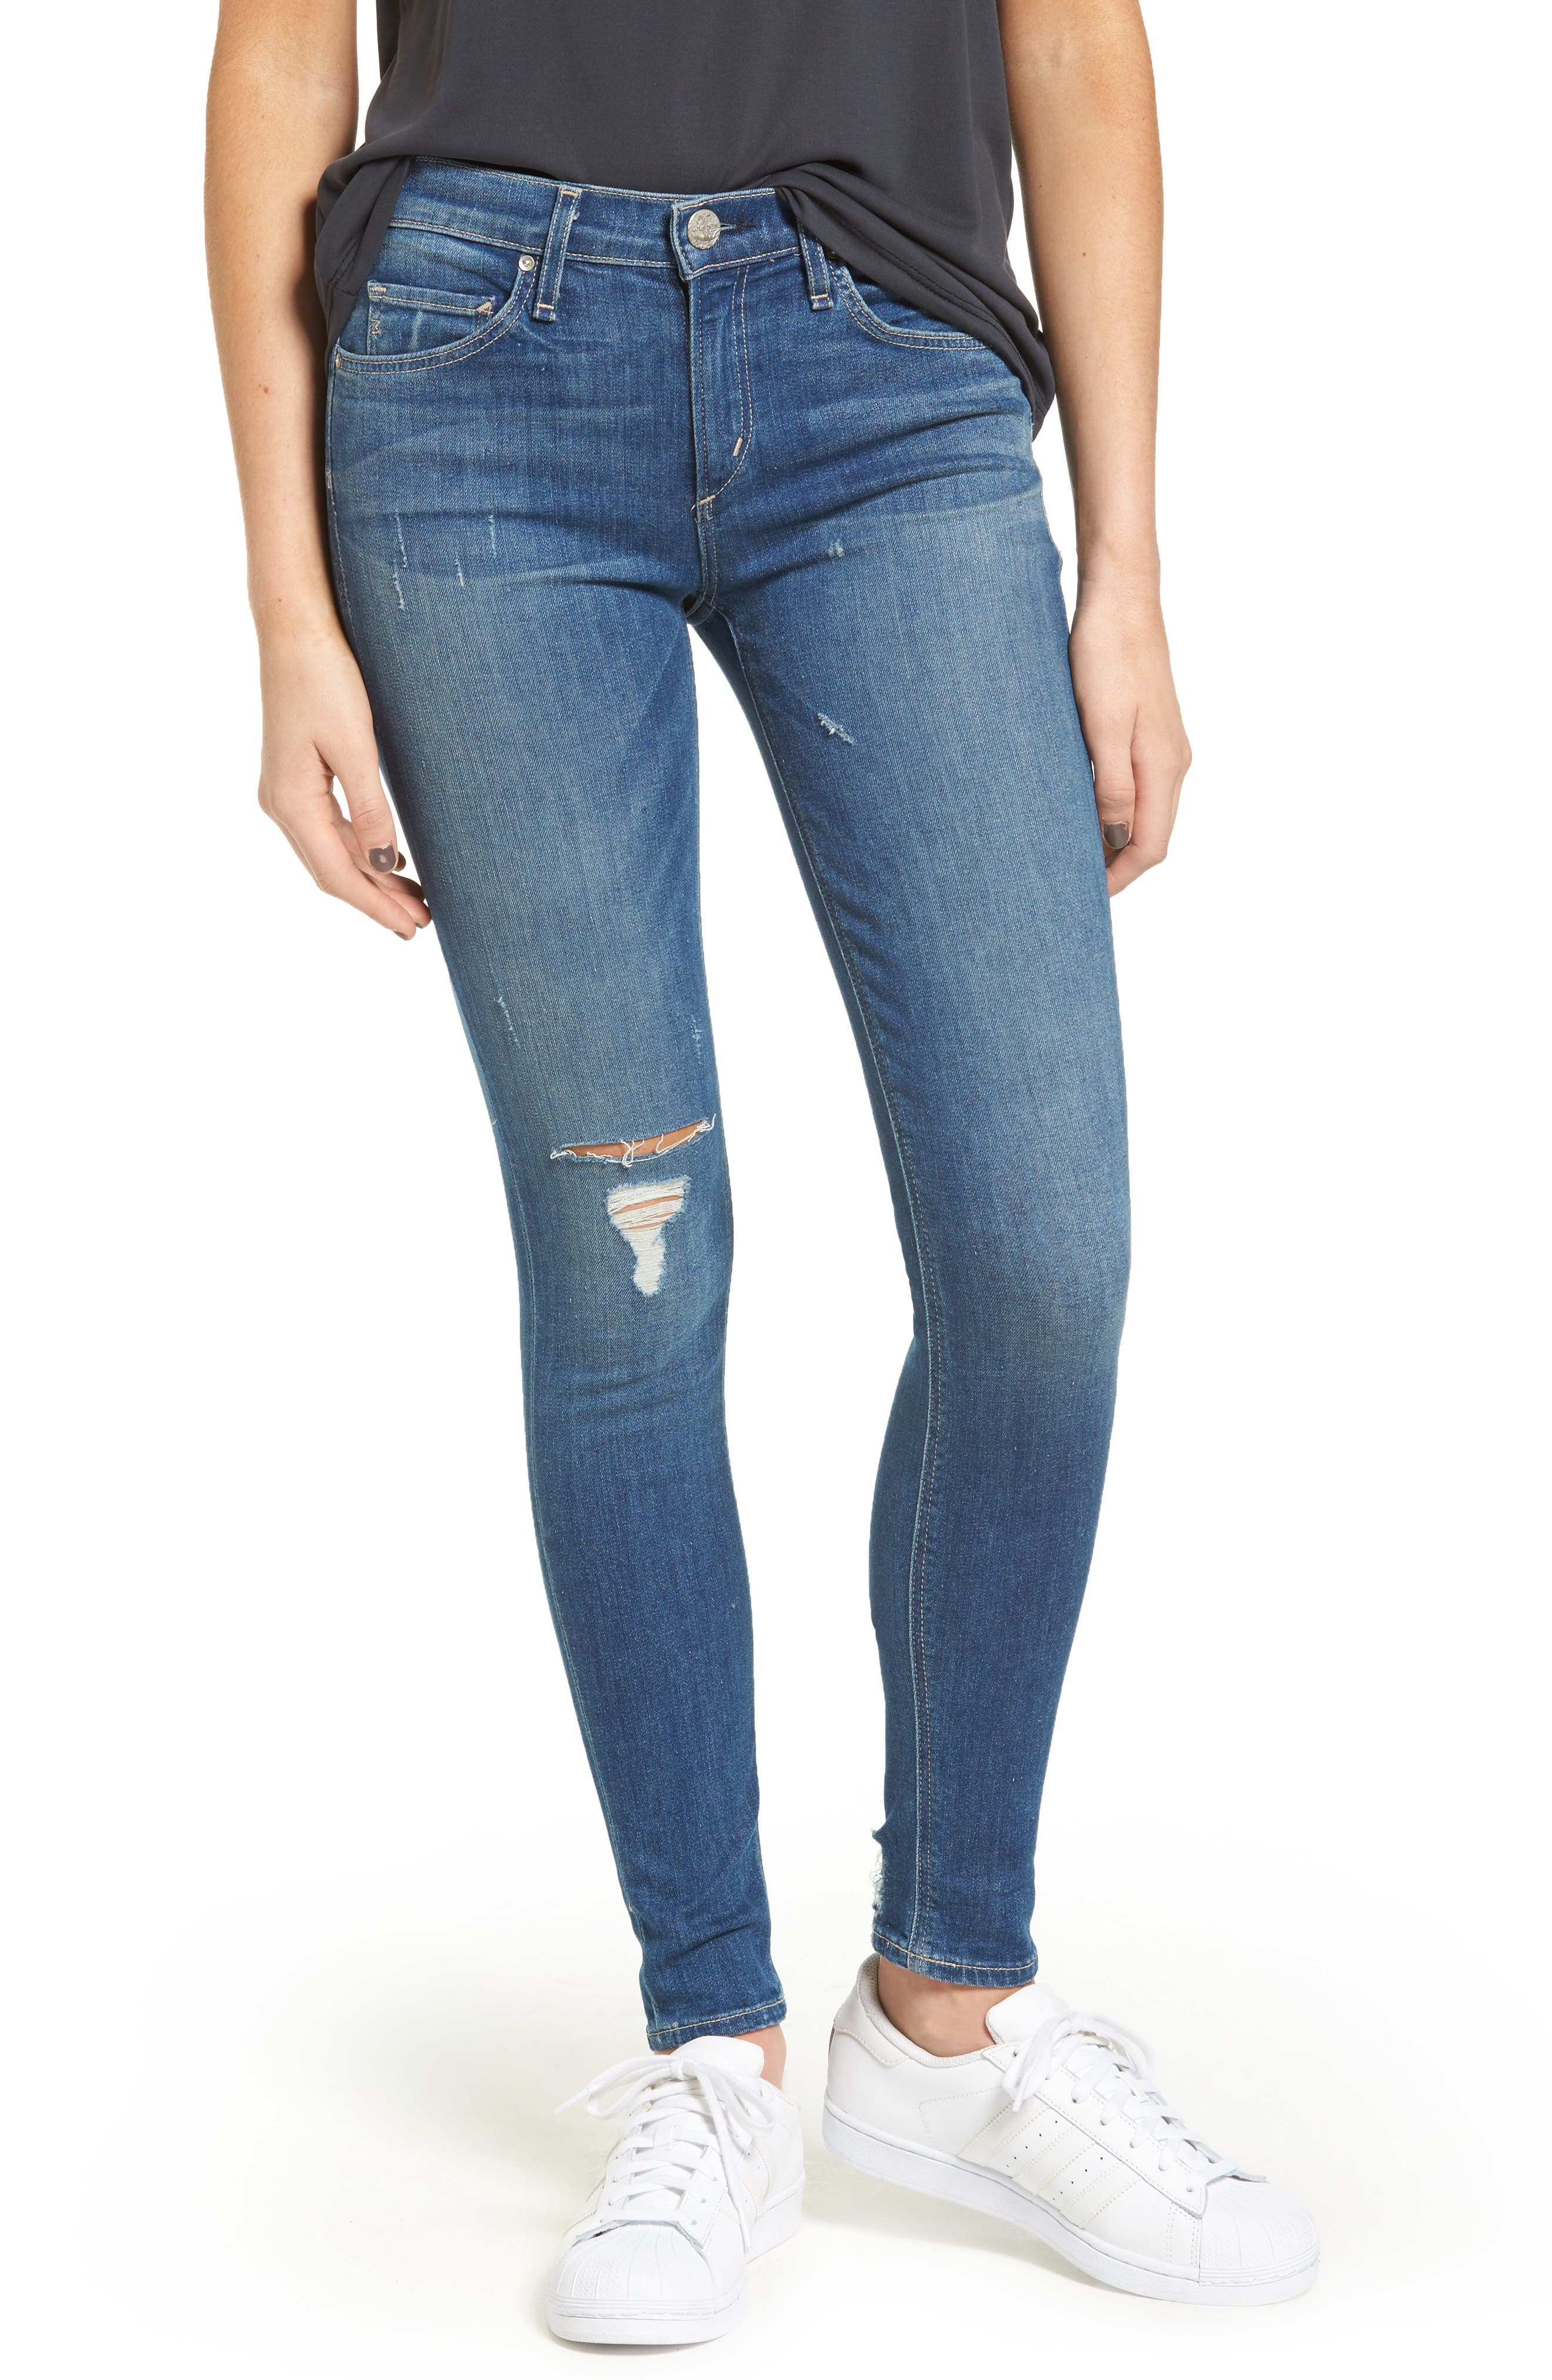 McGuire Newton Ankle Skinny Jeans (Walking the Canyon)